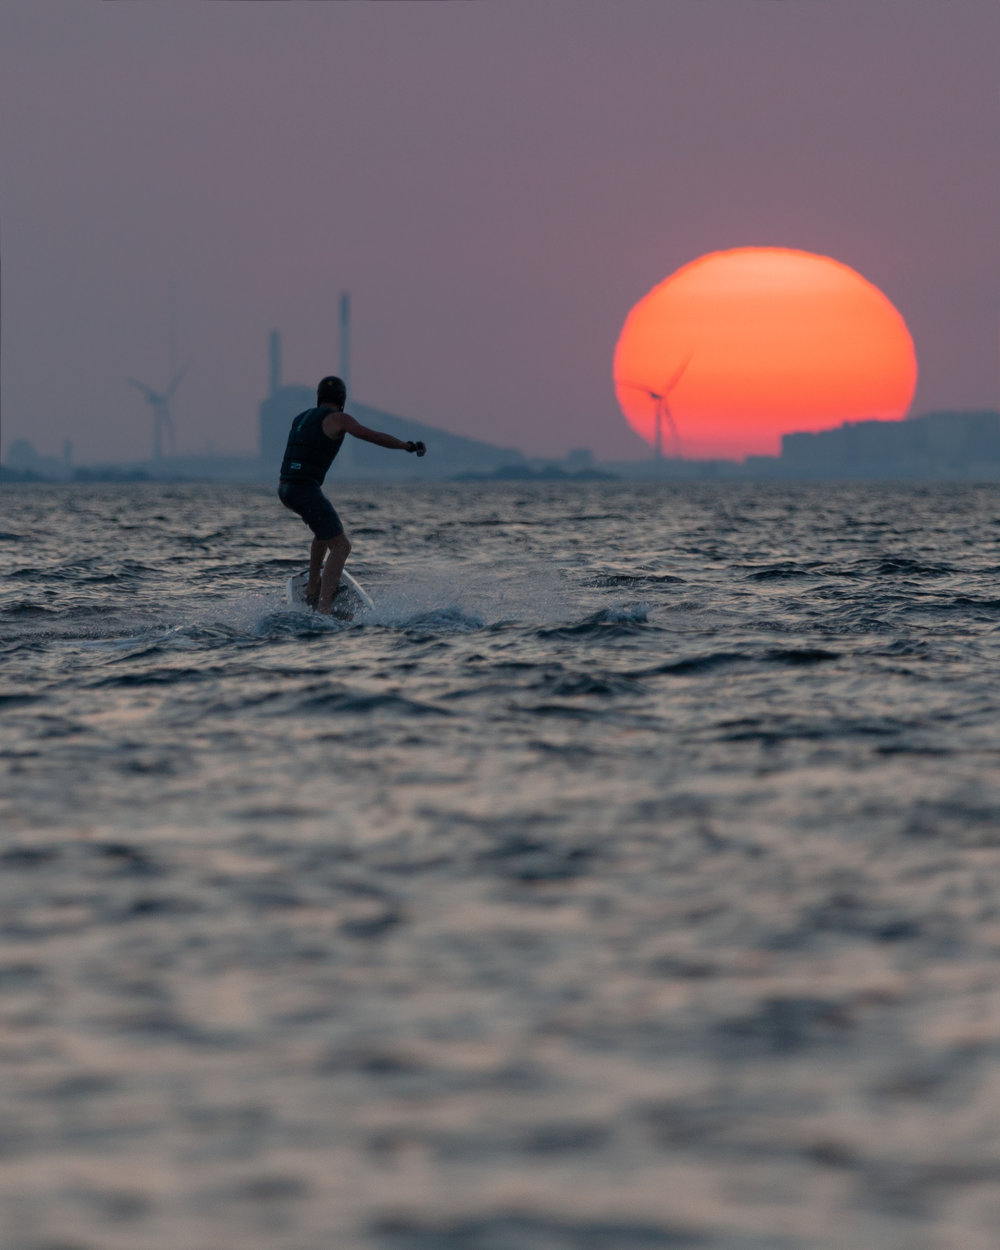 Electric surfboard in the sunset